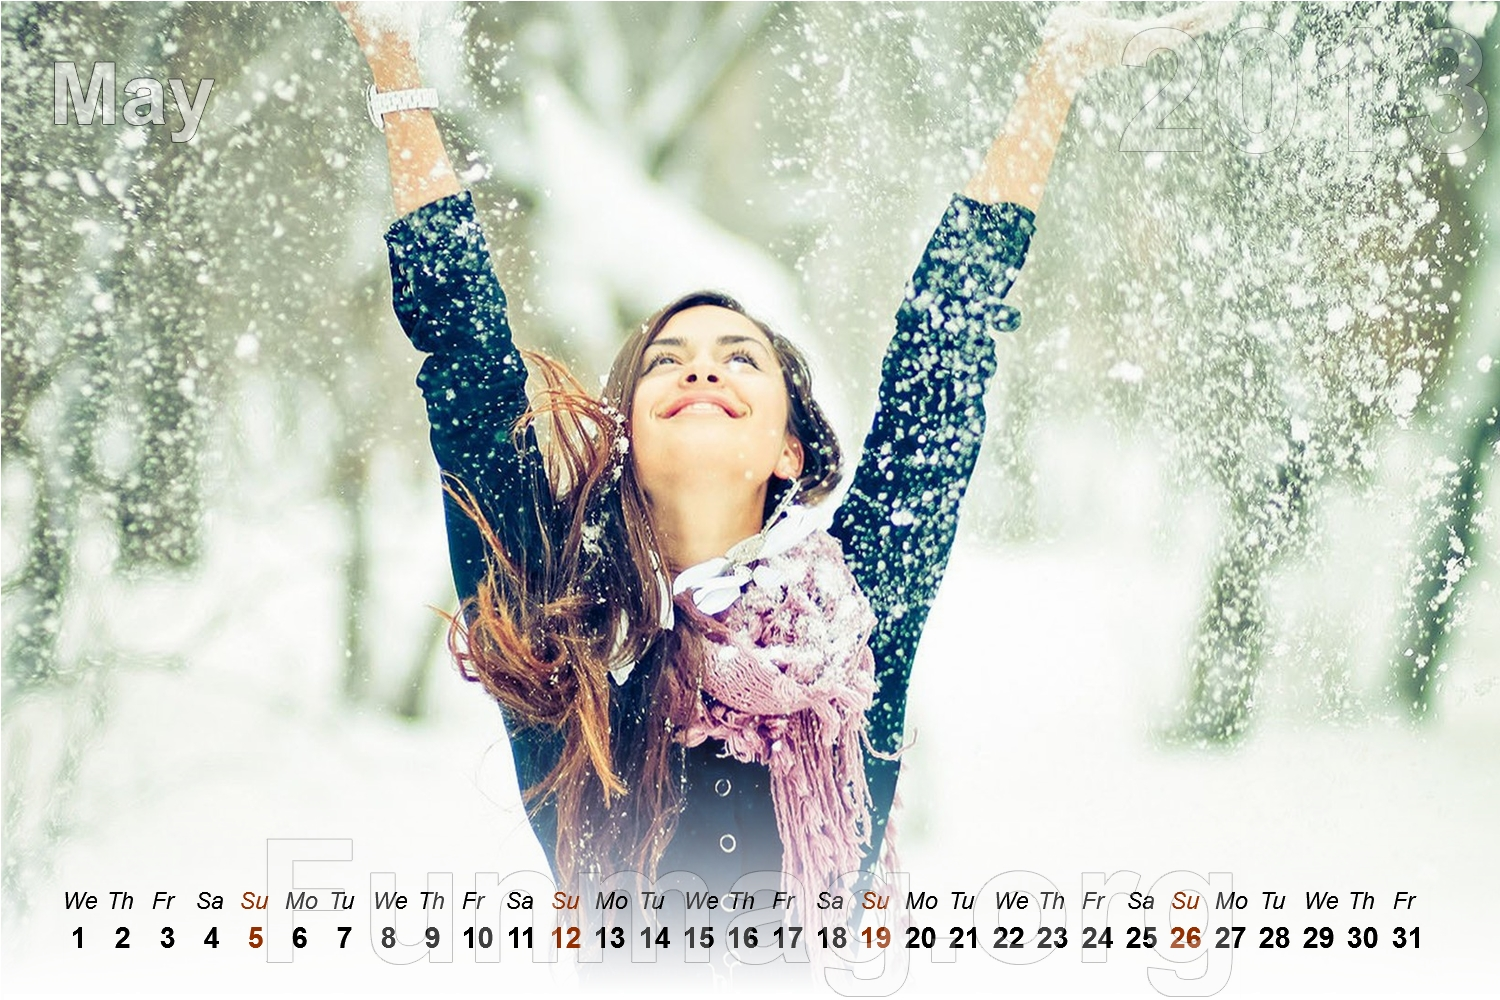 beautiful-women-calendar-2013- (5)